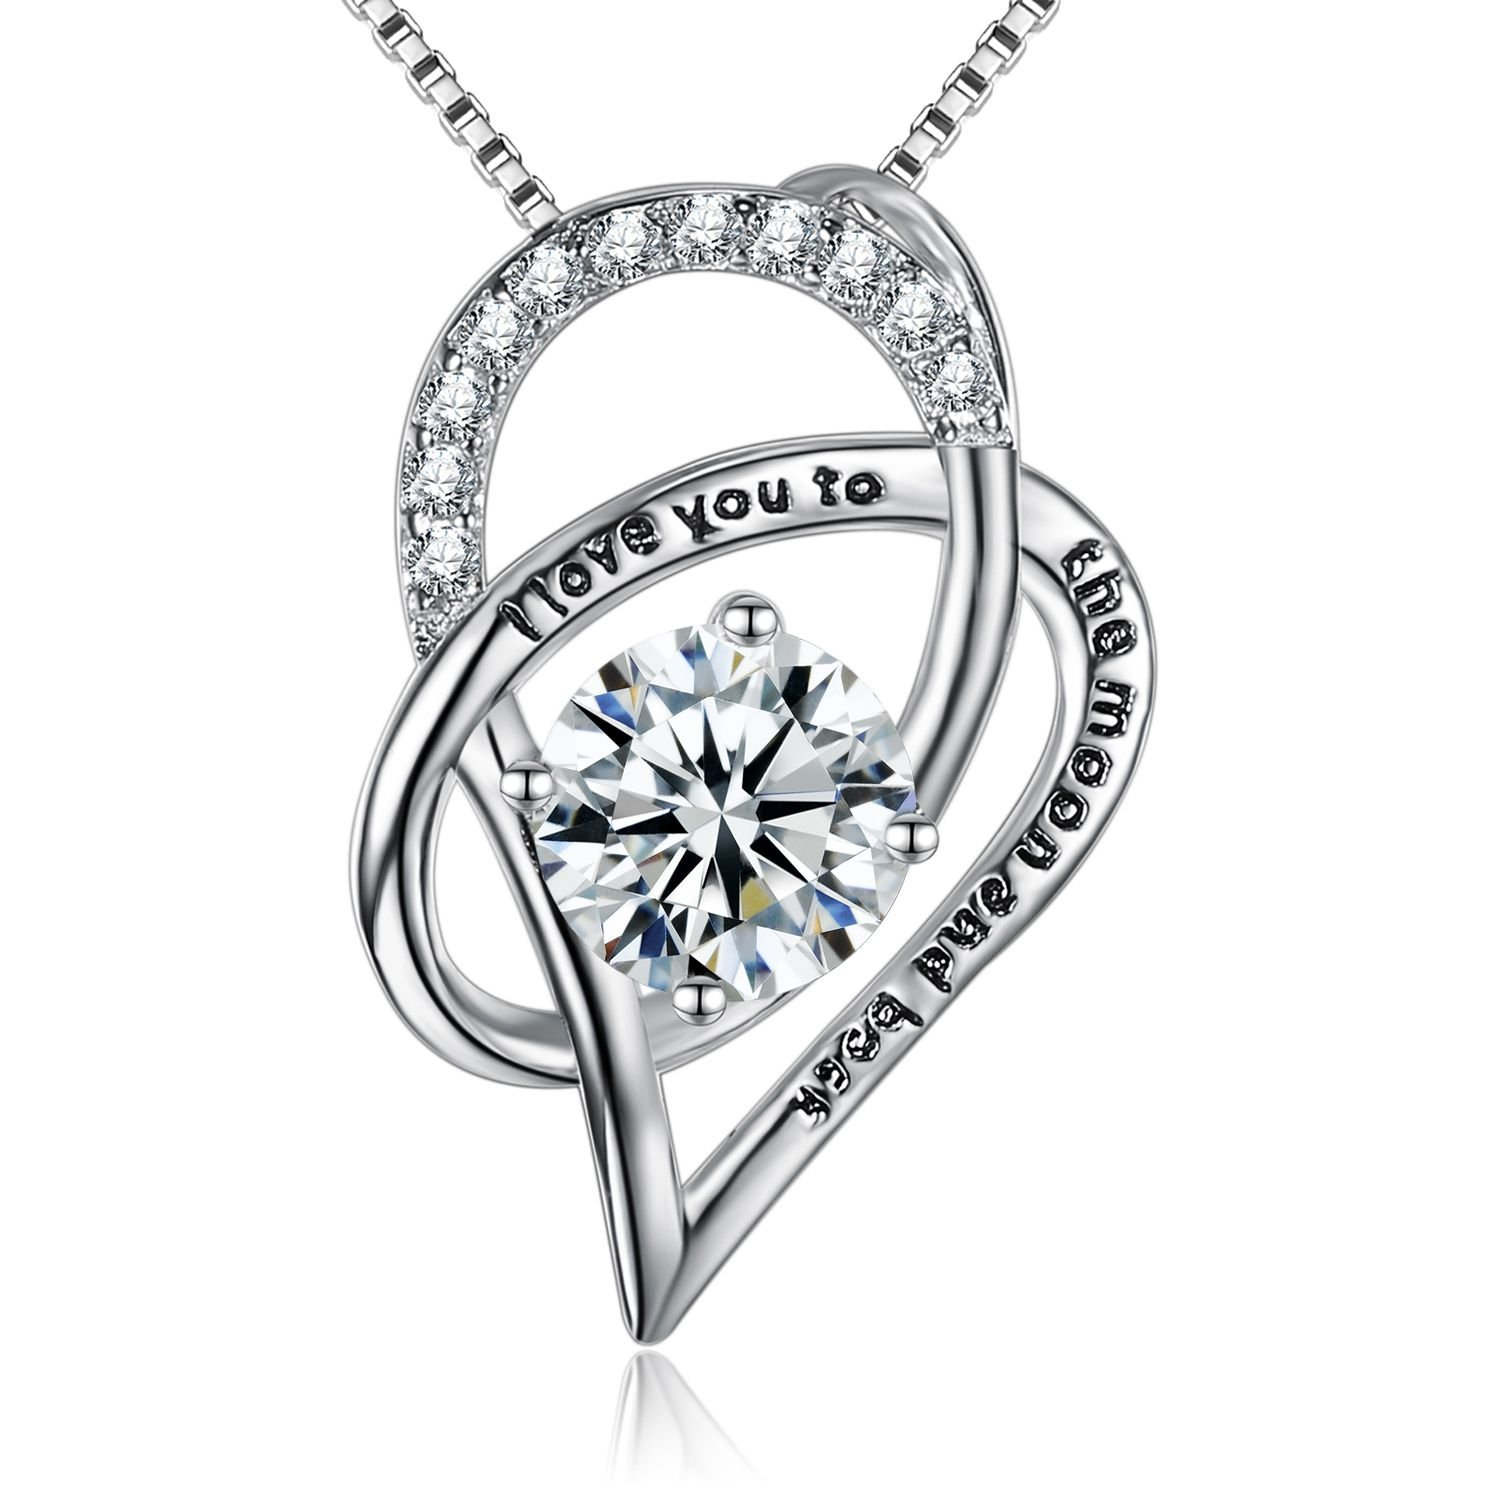 BGTY Sterling Silver I Love You To The Moon and Back Love Heart Pendant Necklace 18''